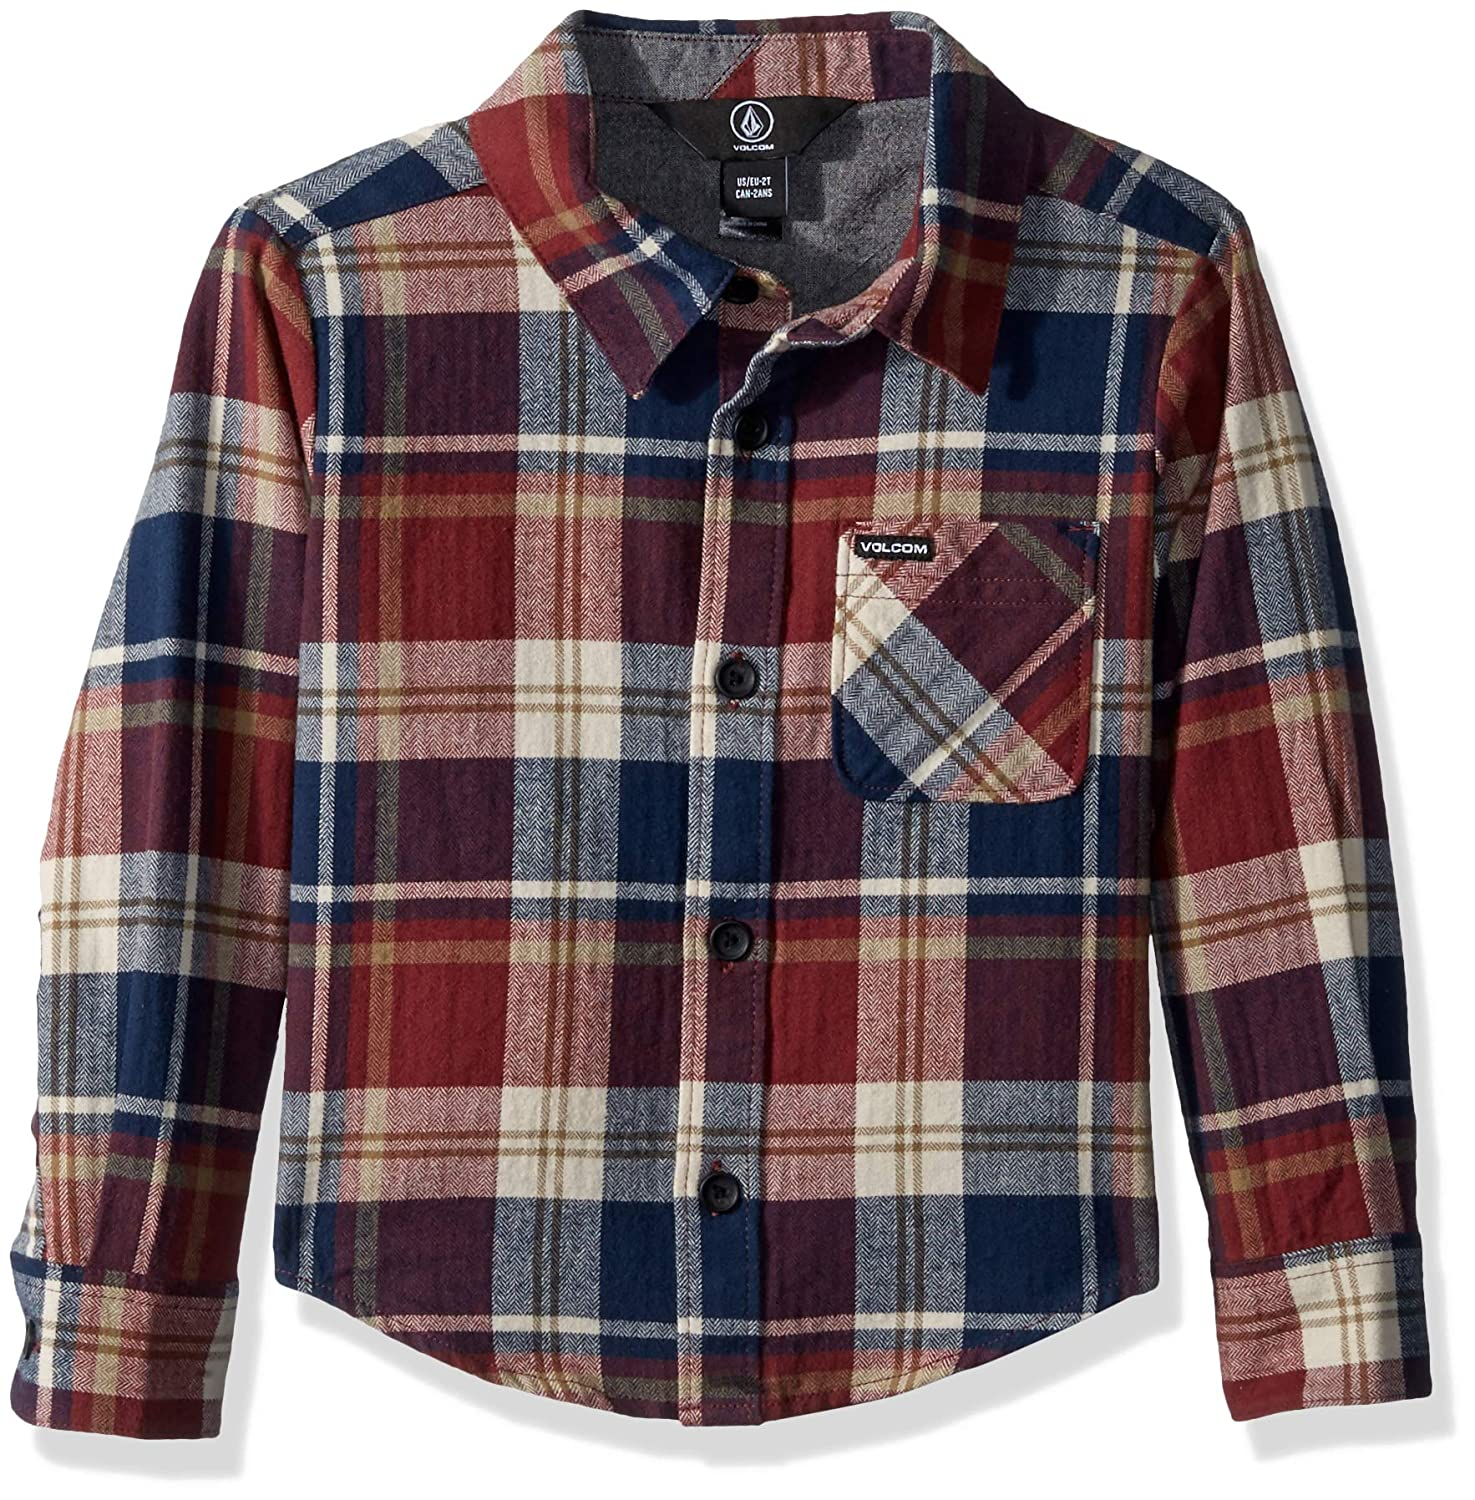 Volcom Little Boys' Caden Plaid Long Sleeve Flannel Button Up Shirt Y0541802